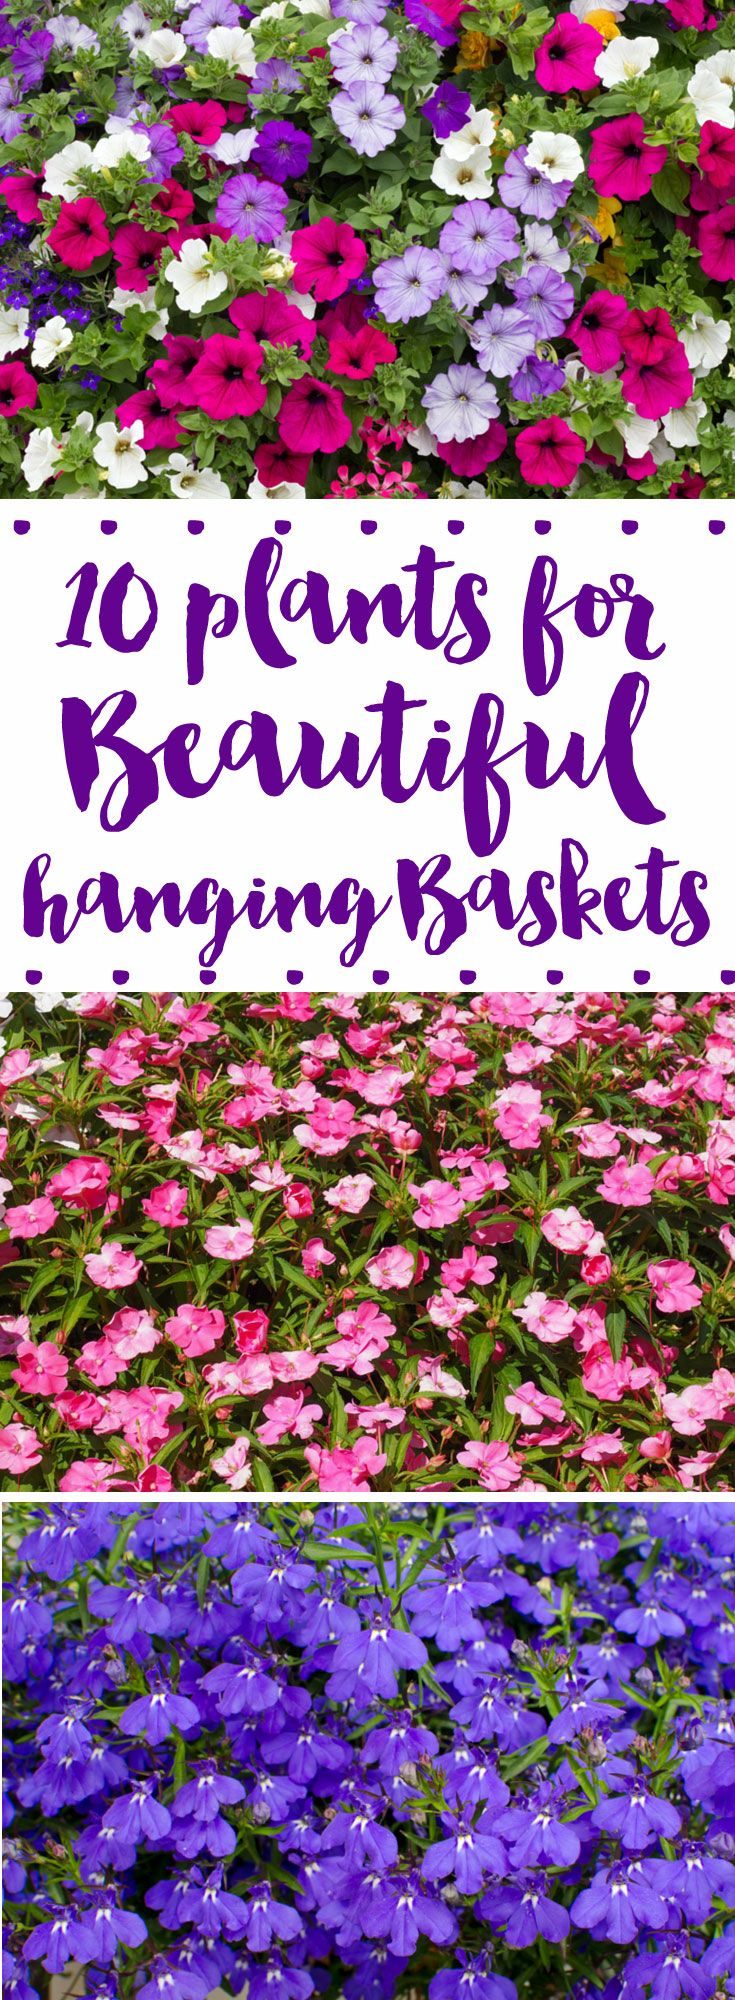 10 Flowers for Beautiful Hanging Baskets   Porch, Plants and Easy